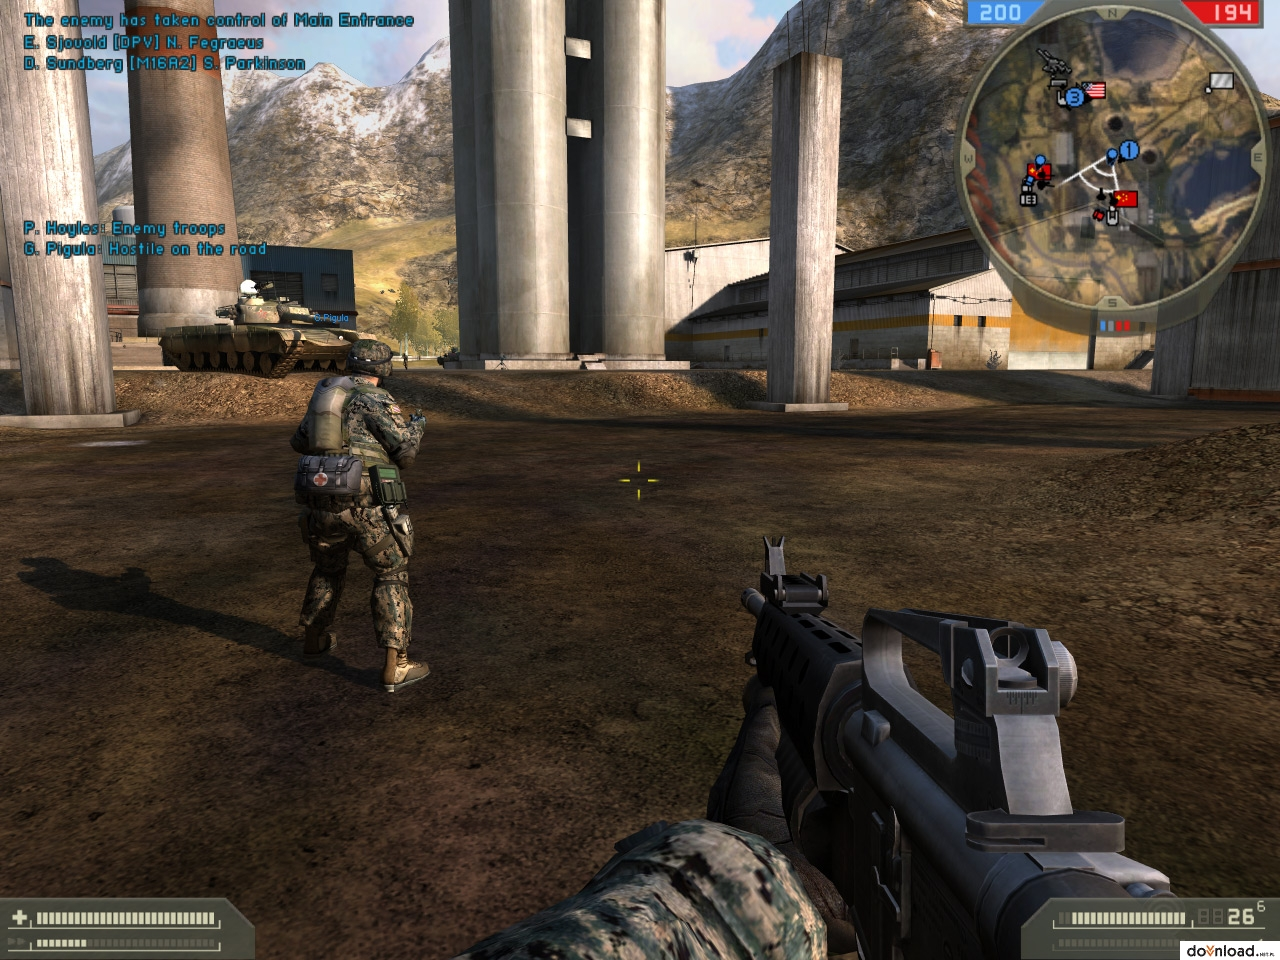 BattleField 2 PC Game Free Download Full Version ~ JB BLOG